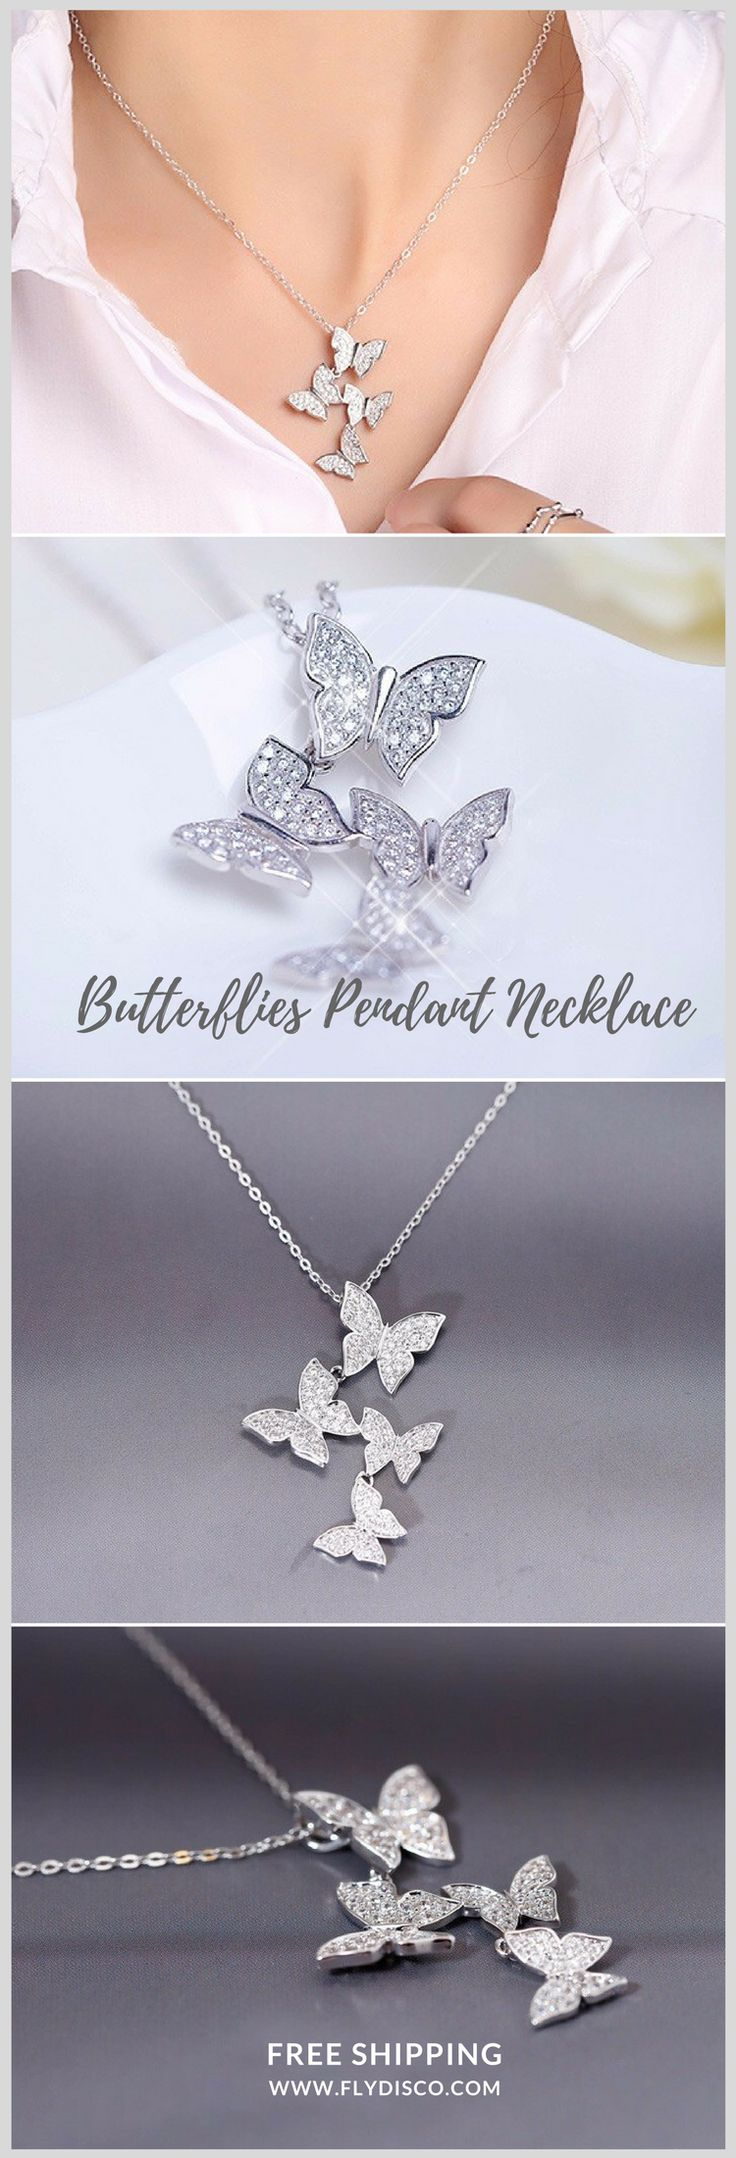 Butterflies Pendant Necklace - They are the symbol of freedom, so when butterflies choose to group together, it's because they use to do it. A delicate and elegant necklace, for the FREEDOM lovers ♥